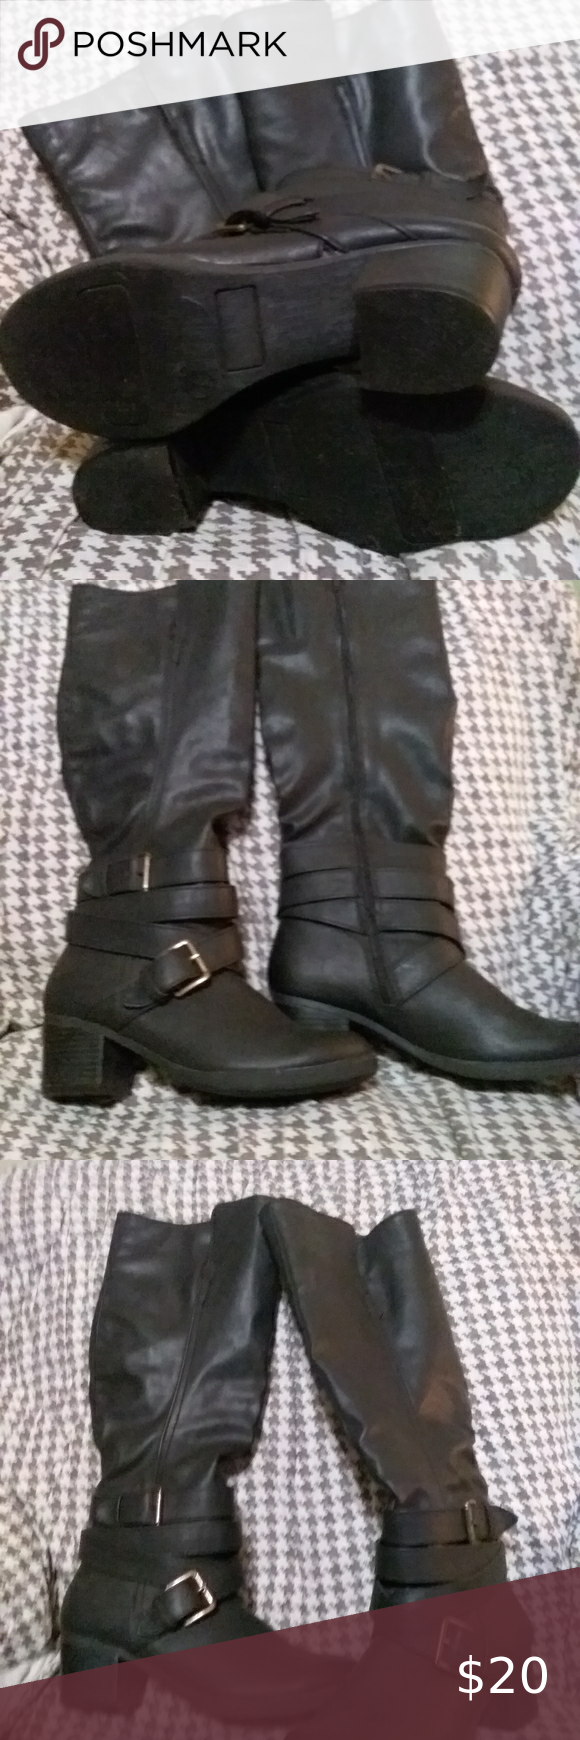 Ladies black boots size 7 in 2020